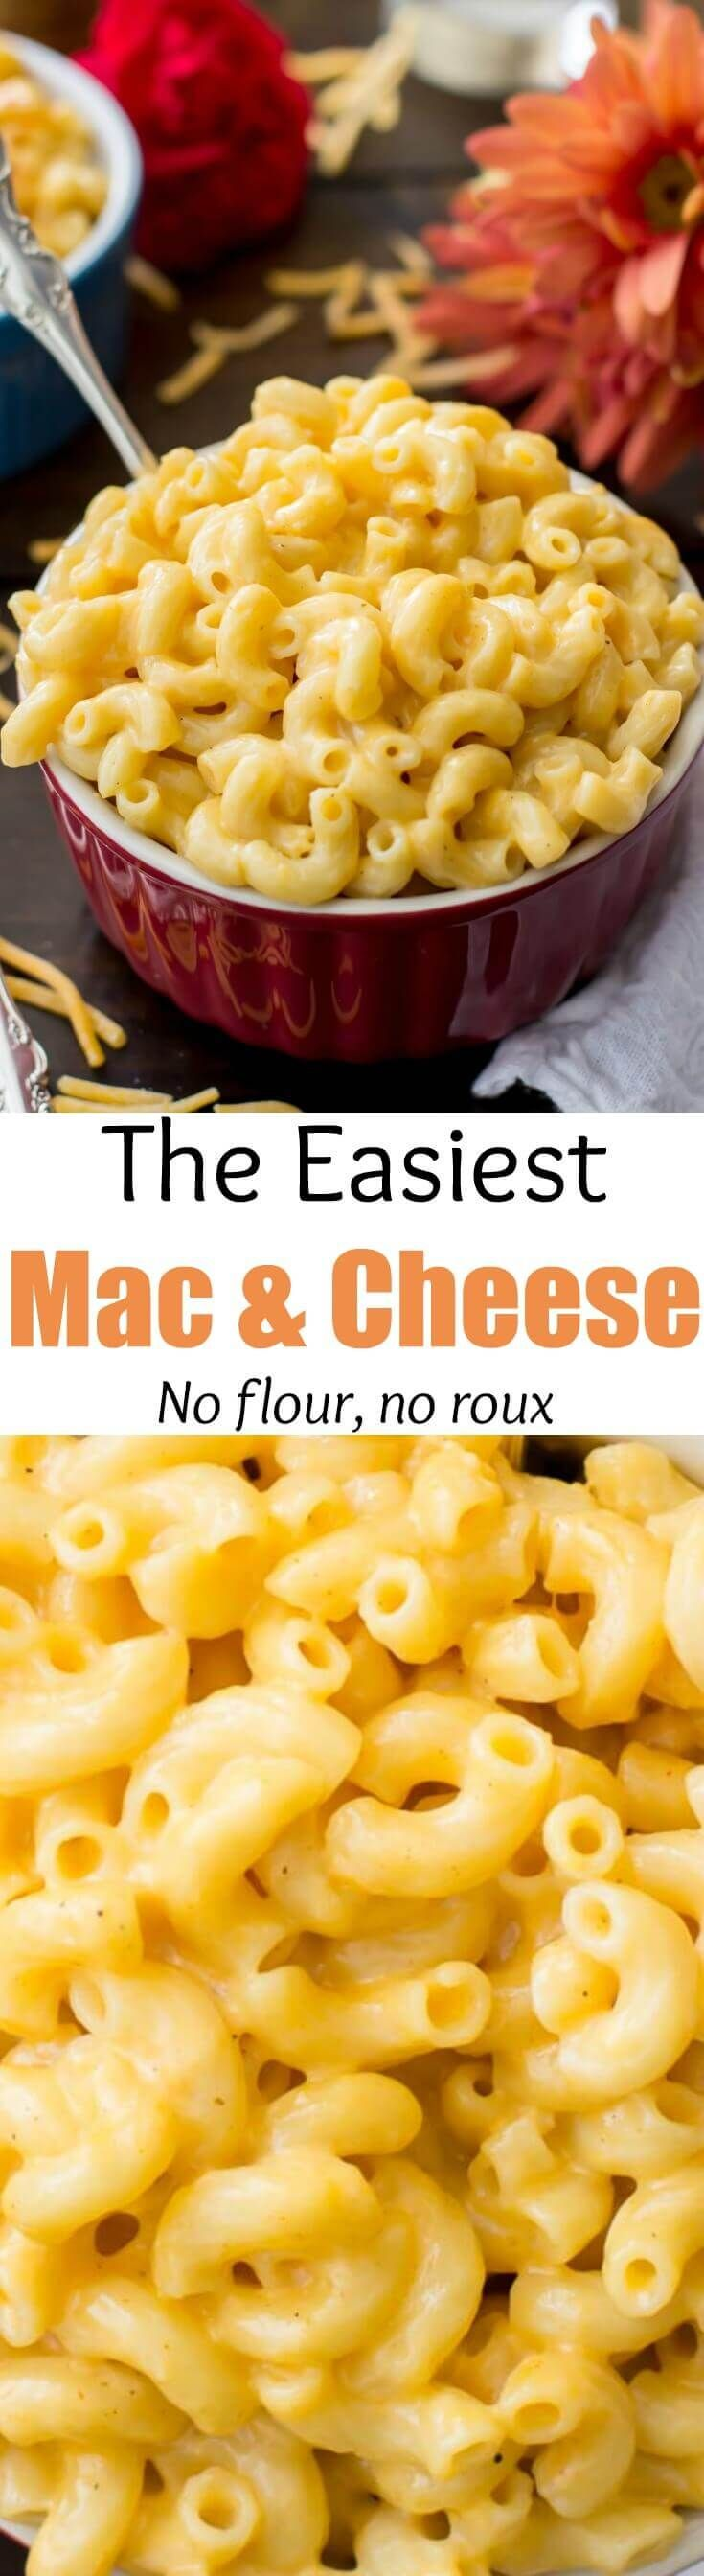 Easy macaroni and cheese made without flour or roux